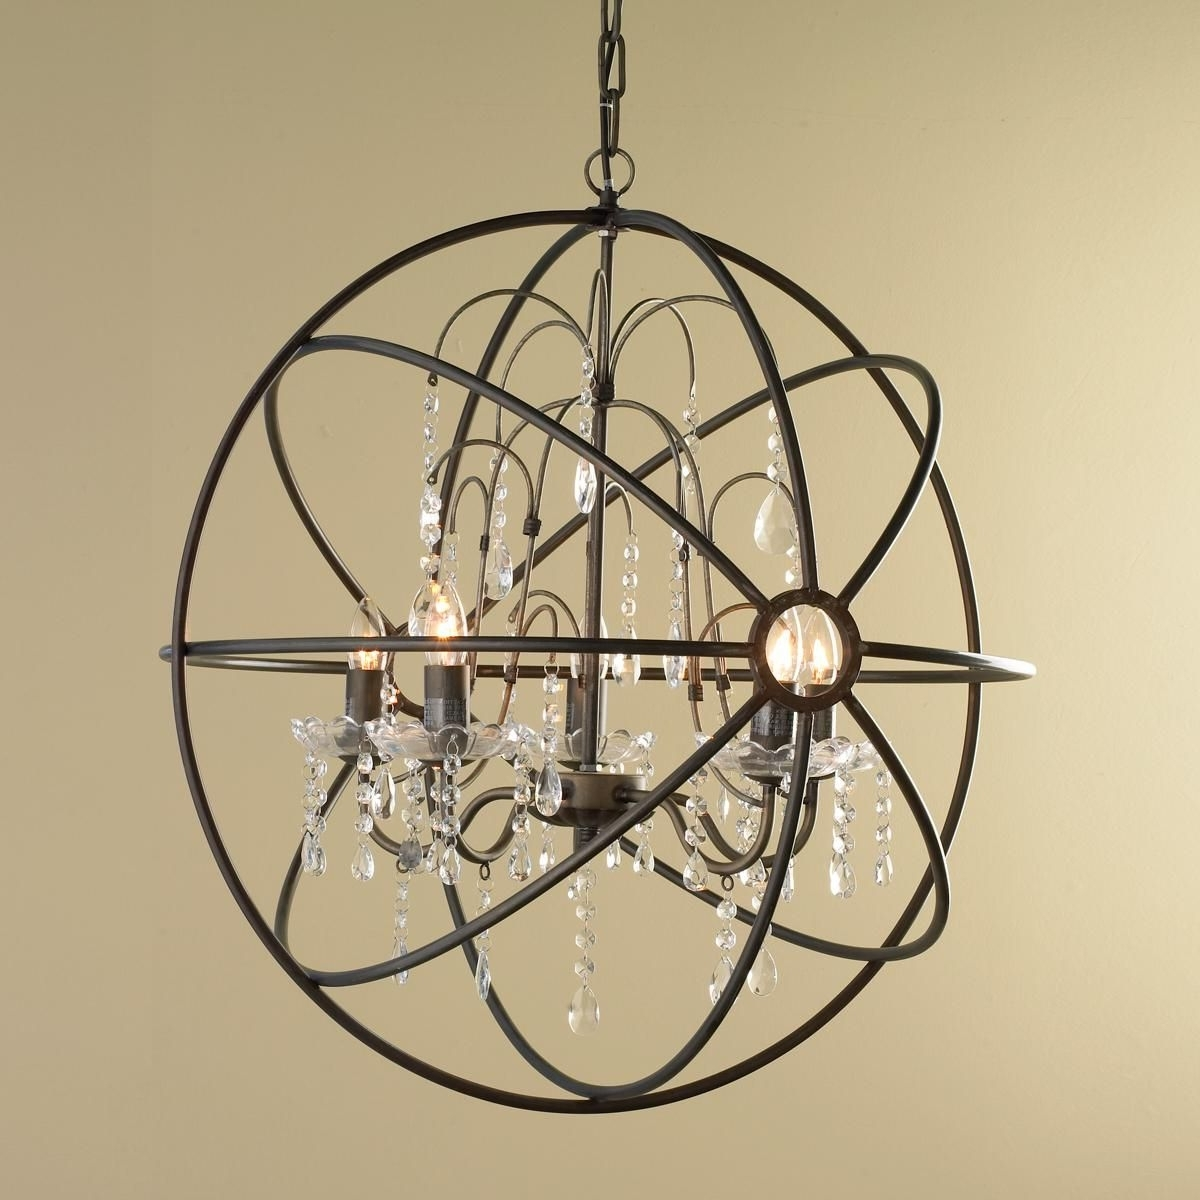 Crystal And Metal Orb Chandelier (View 3 of 15)